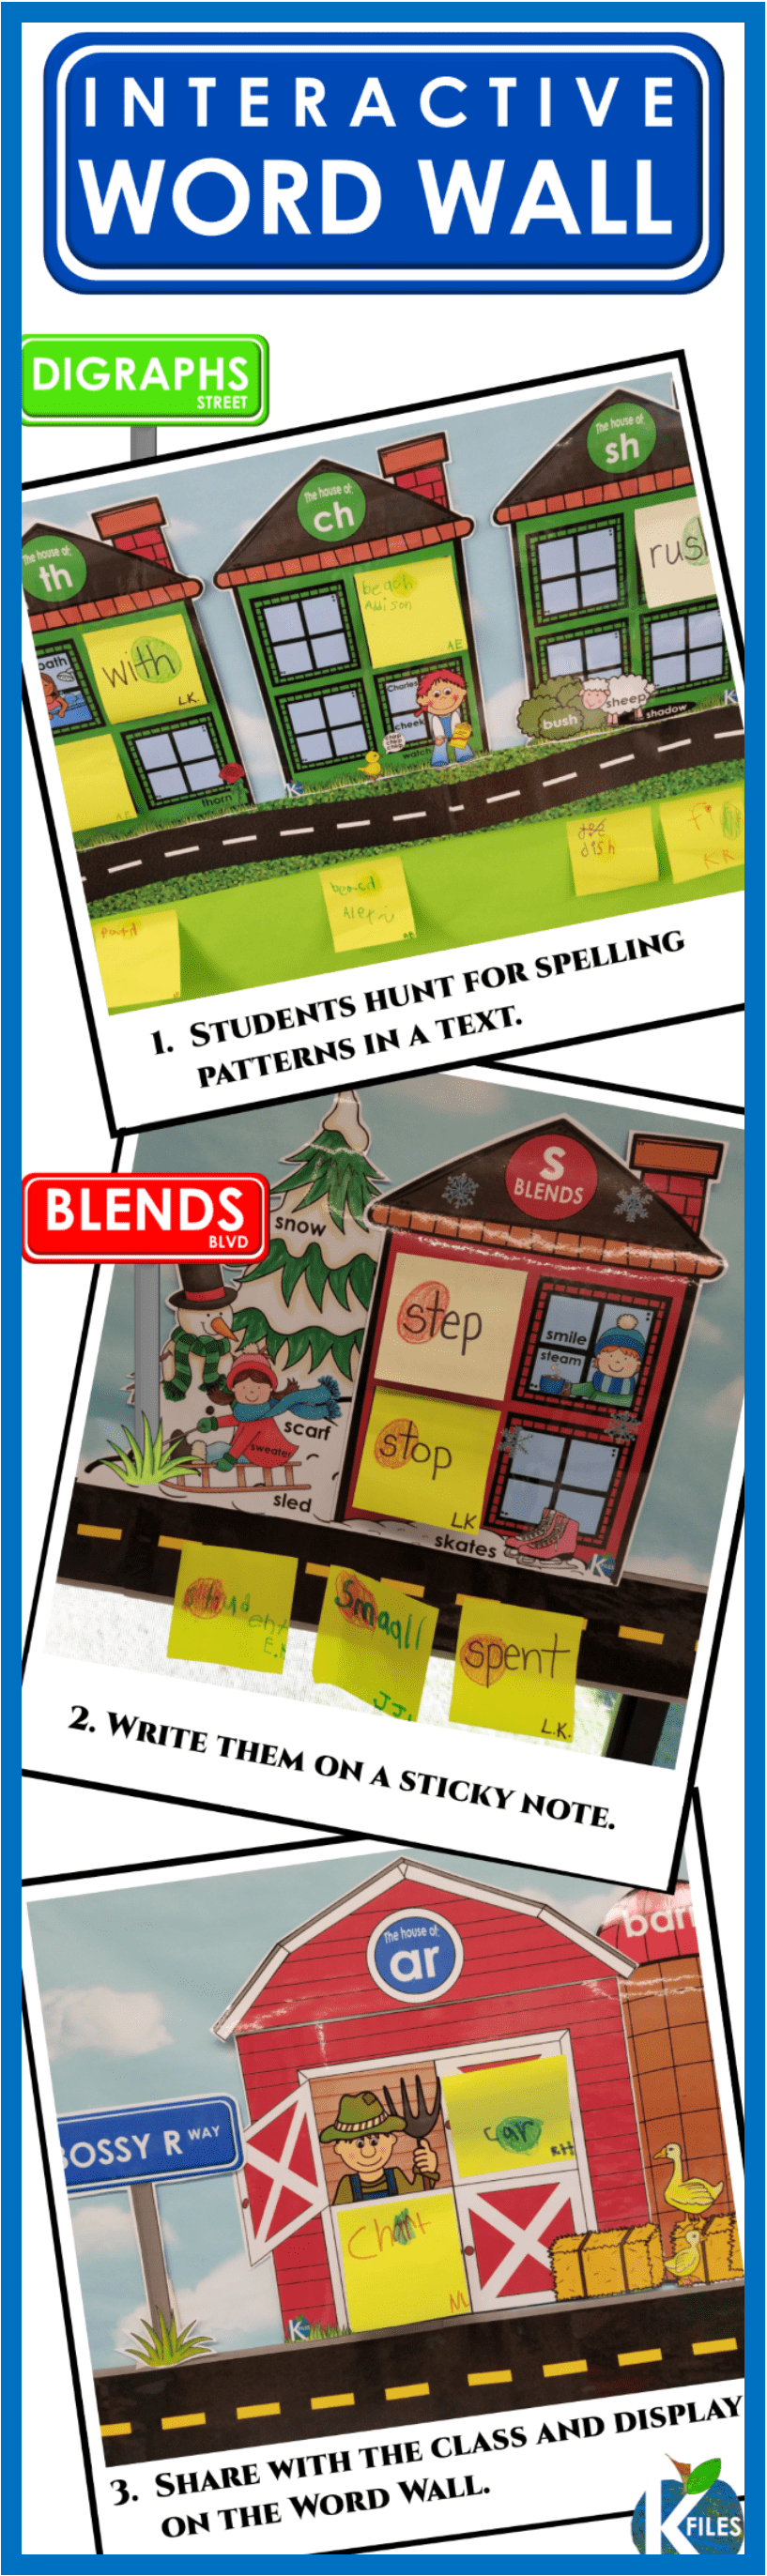 Is your Word Wall just taking up space? Are you concerned that your Word Wall decor is simply that...decor? The Interactive PHONICS word wall is a trending new approach to Word Wall activities in the primary grades. Word Wall activities are countless with this approach to phonics instruction. Check it out, your kindergarten, first grade and second grade students will flourish with interaction with your Word Wall ideas.